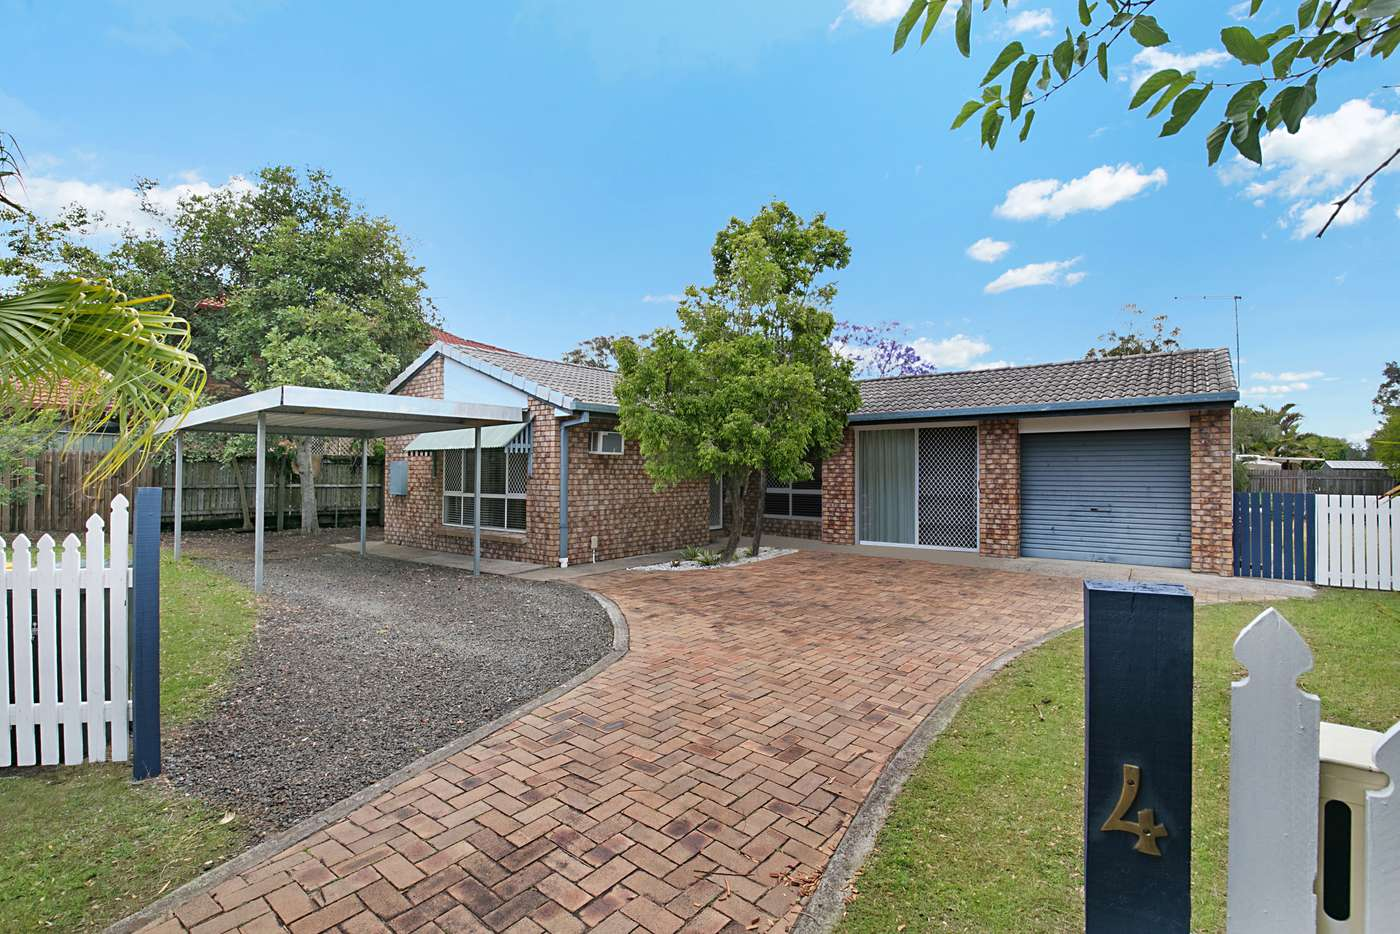 Main view of Homely house listing, 4 Gregwal Ct, Oxley QLD 4075